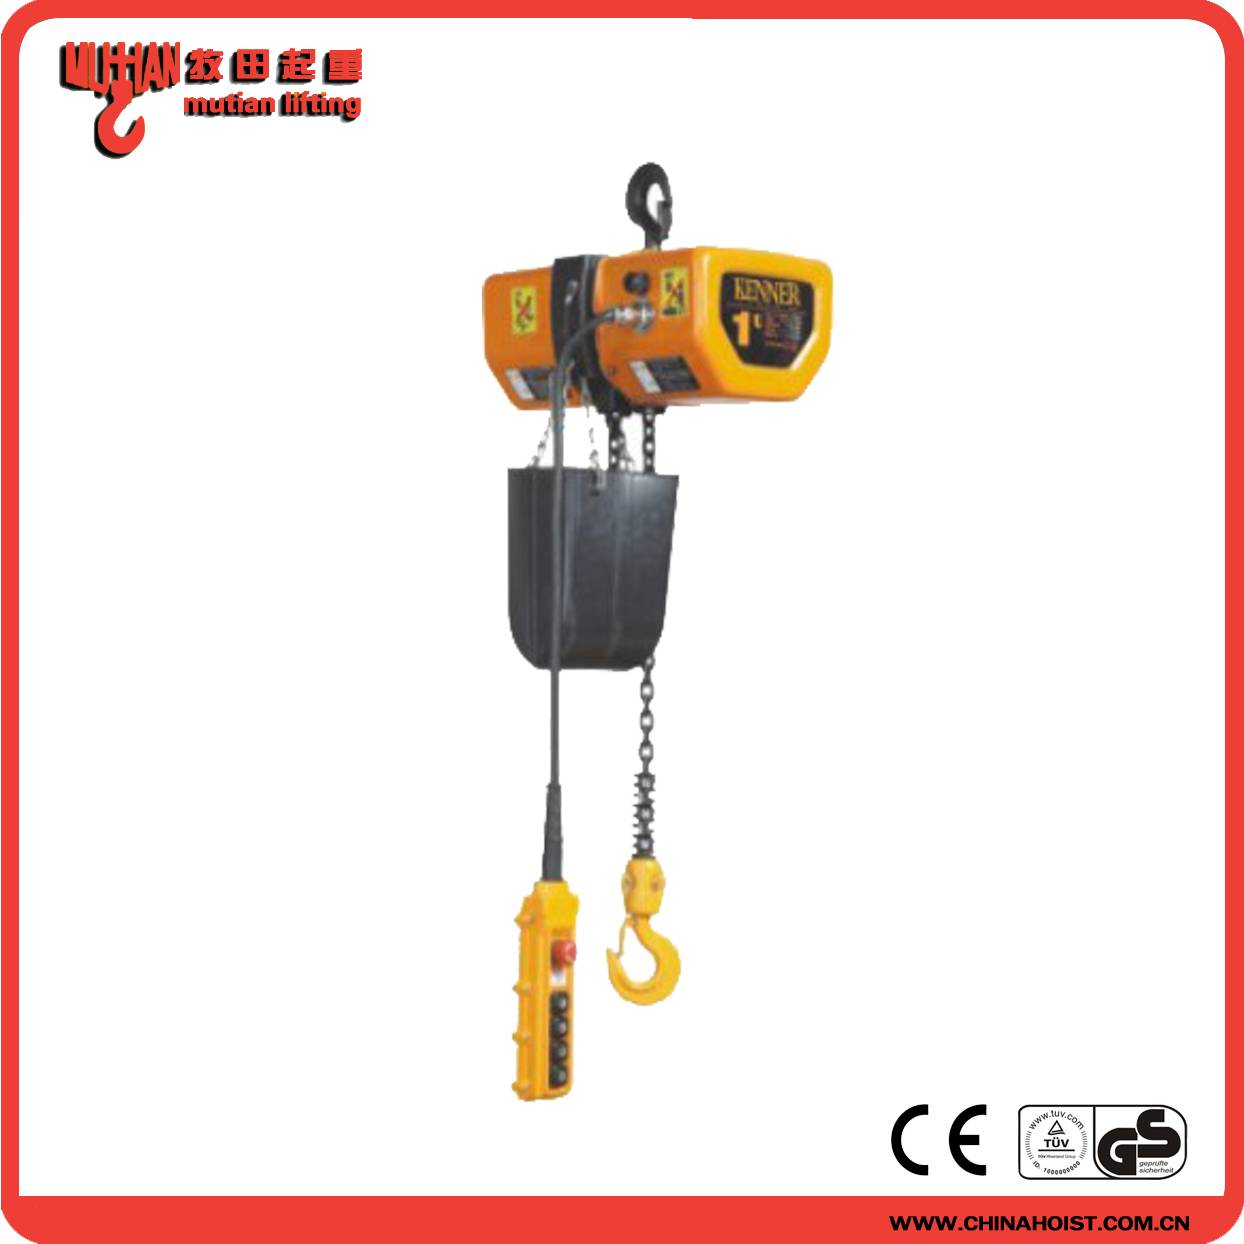 HHBD 1T Electric Chain Hoist 110v, 220v, 380v